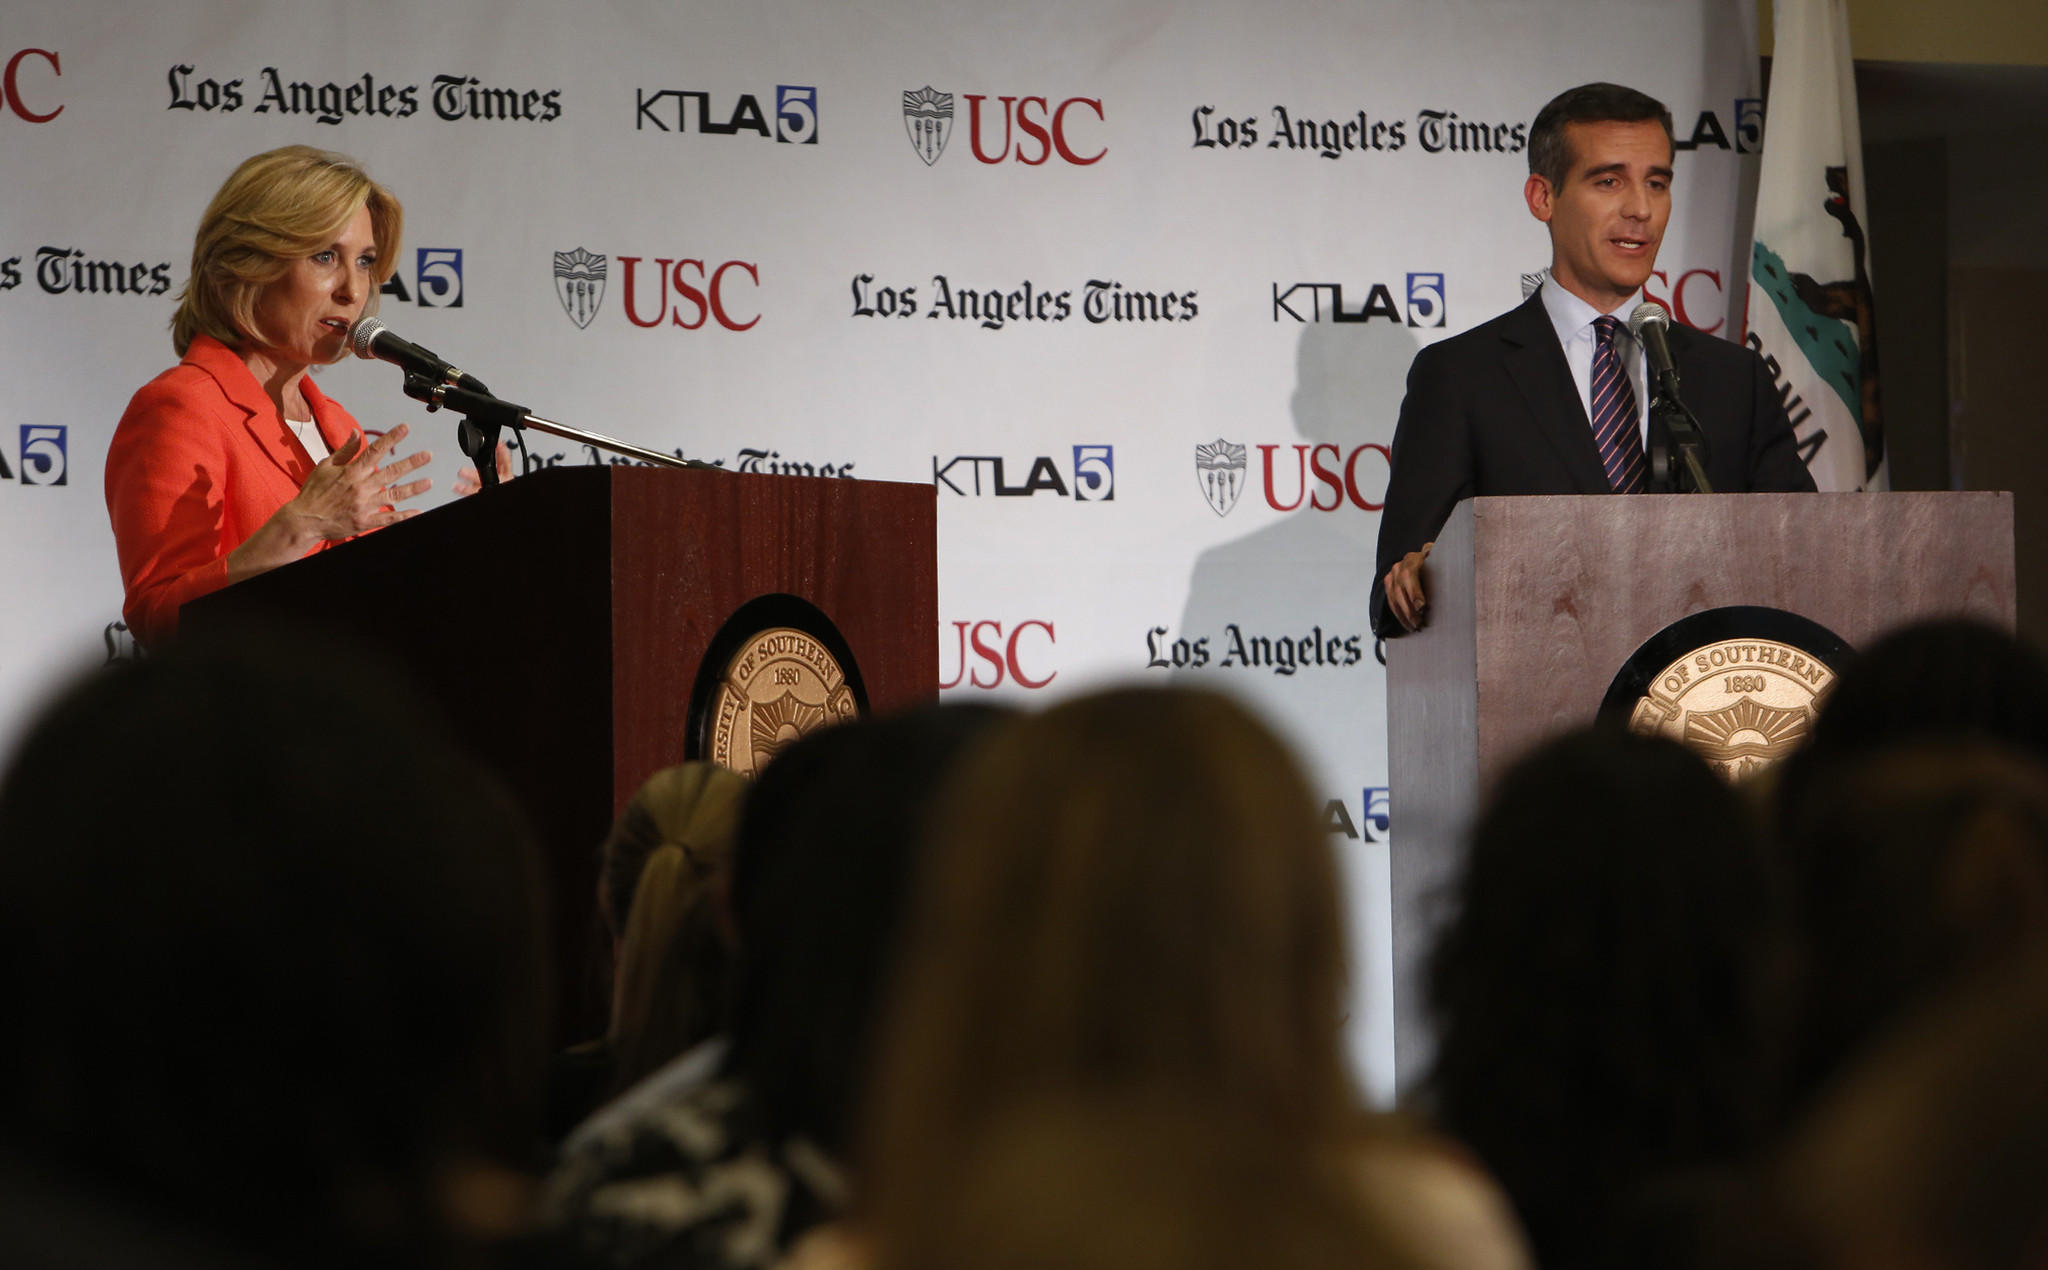 Wendy Greuel and Eric Garcetti participate in a debate at USC.